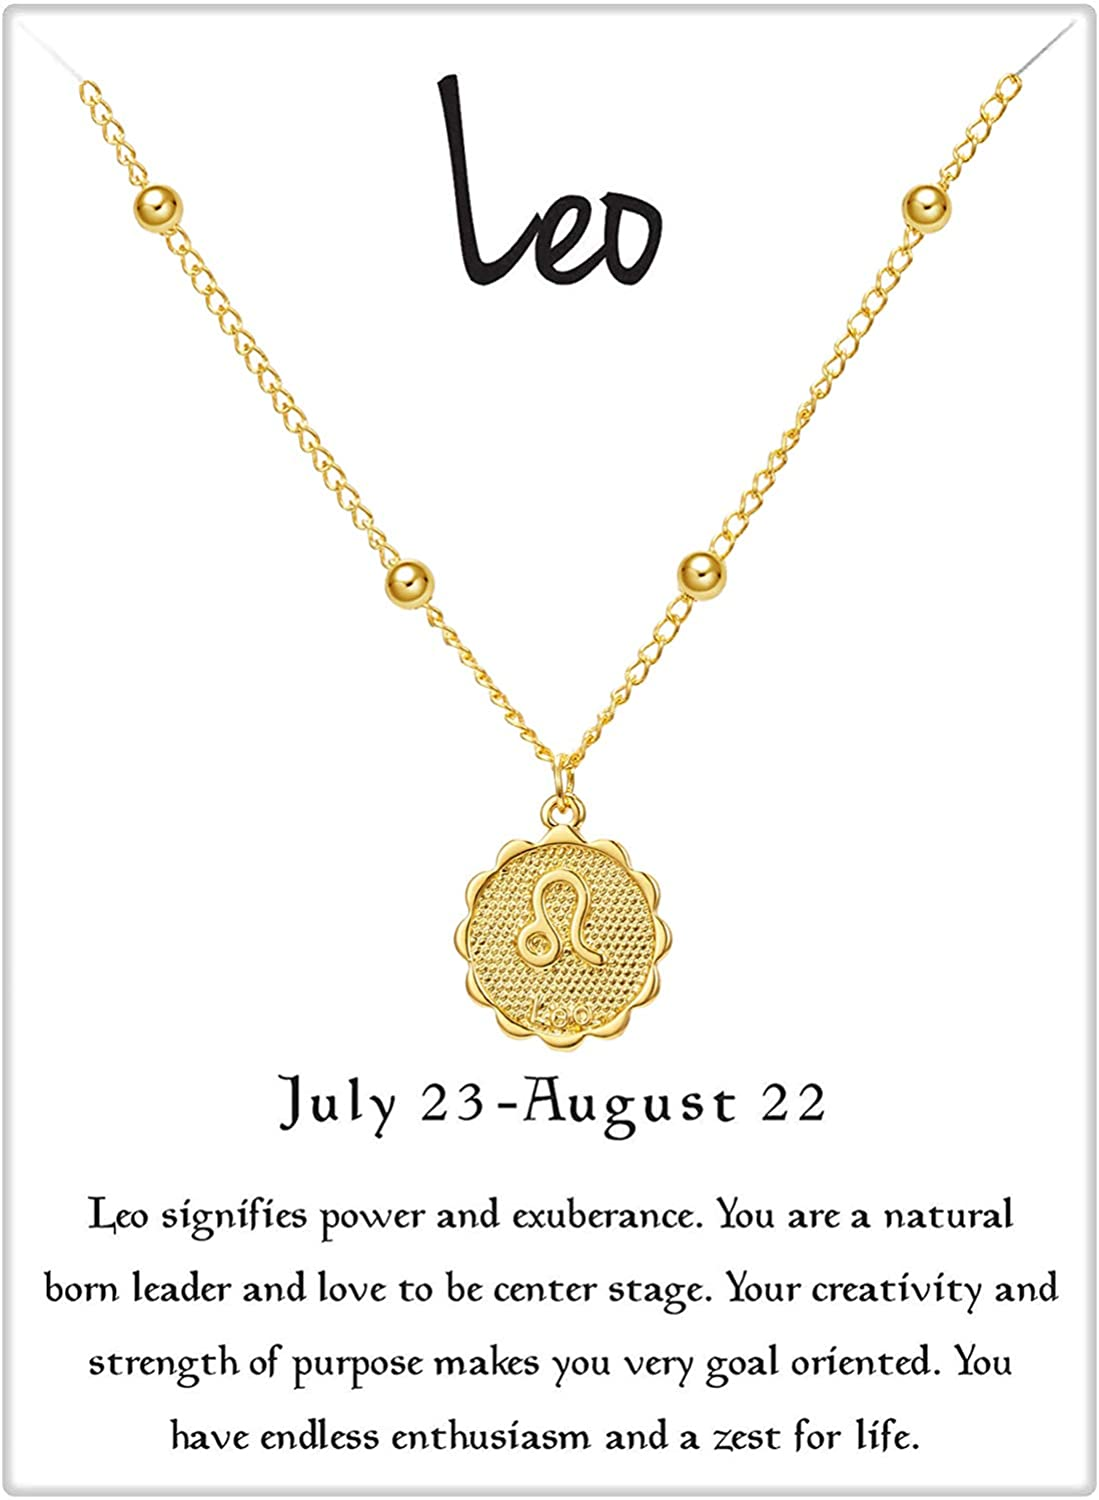 Fesciory Women 12 Constellation Zodiac Pendant Necklace Gold Alloy Horoscope Astrology Chain Jewelry Gifts for Girls